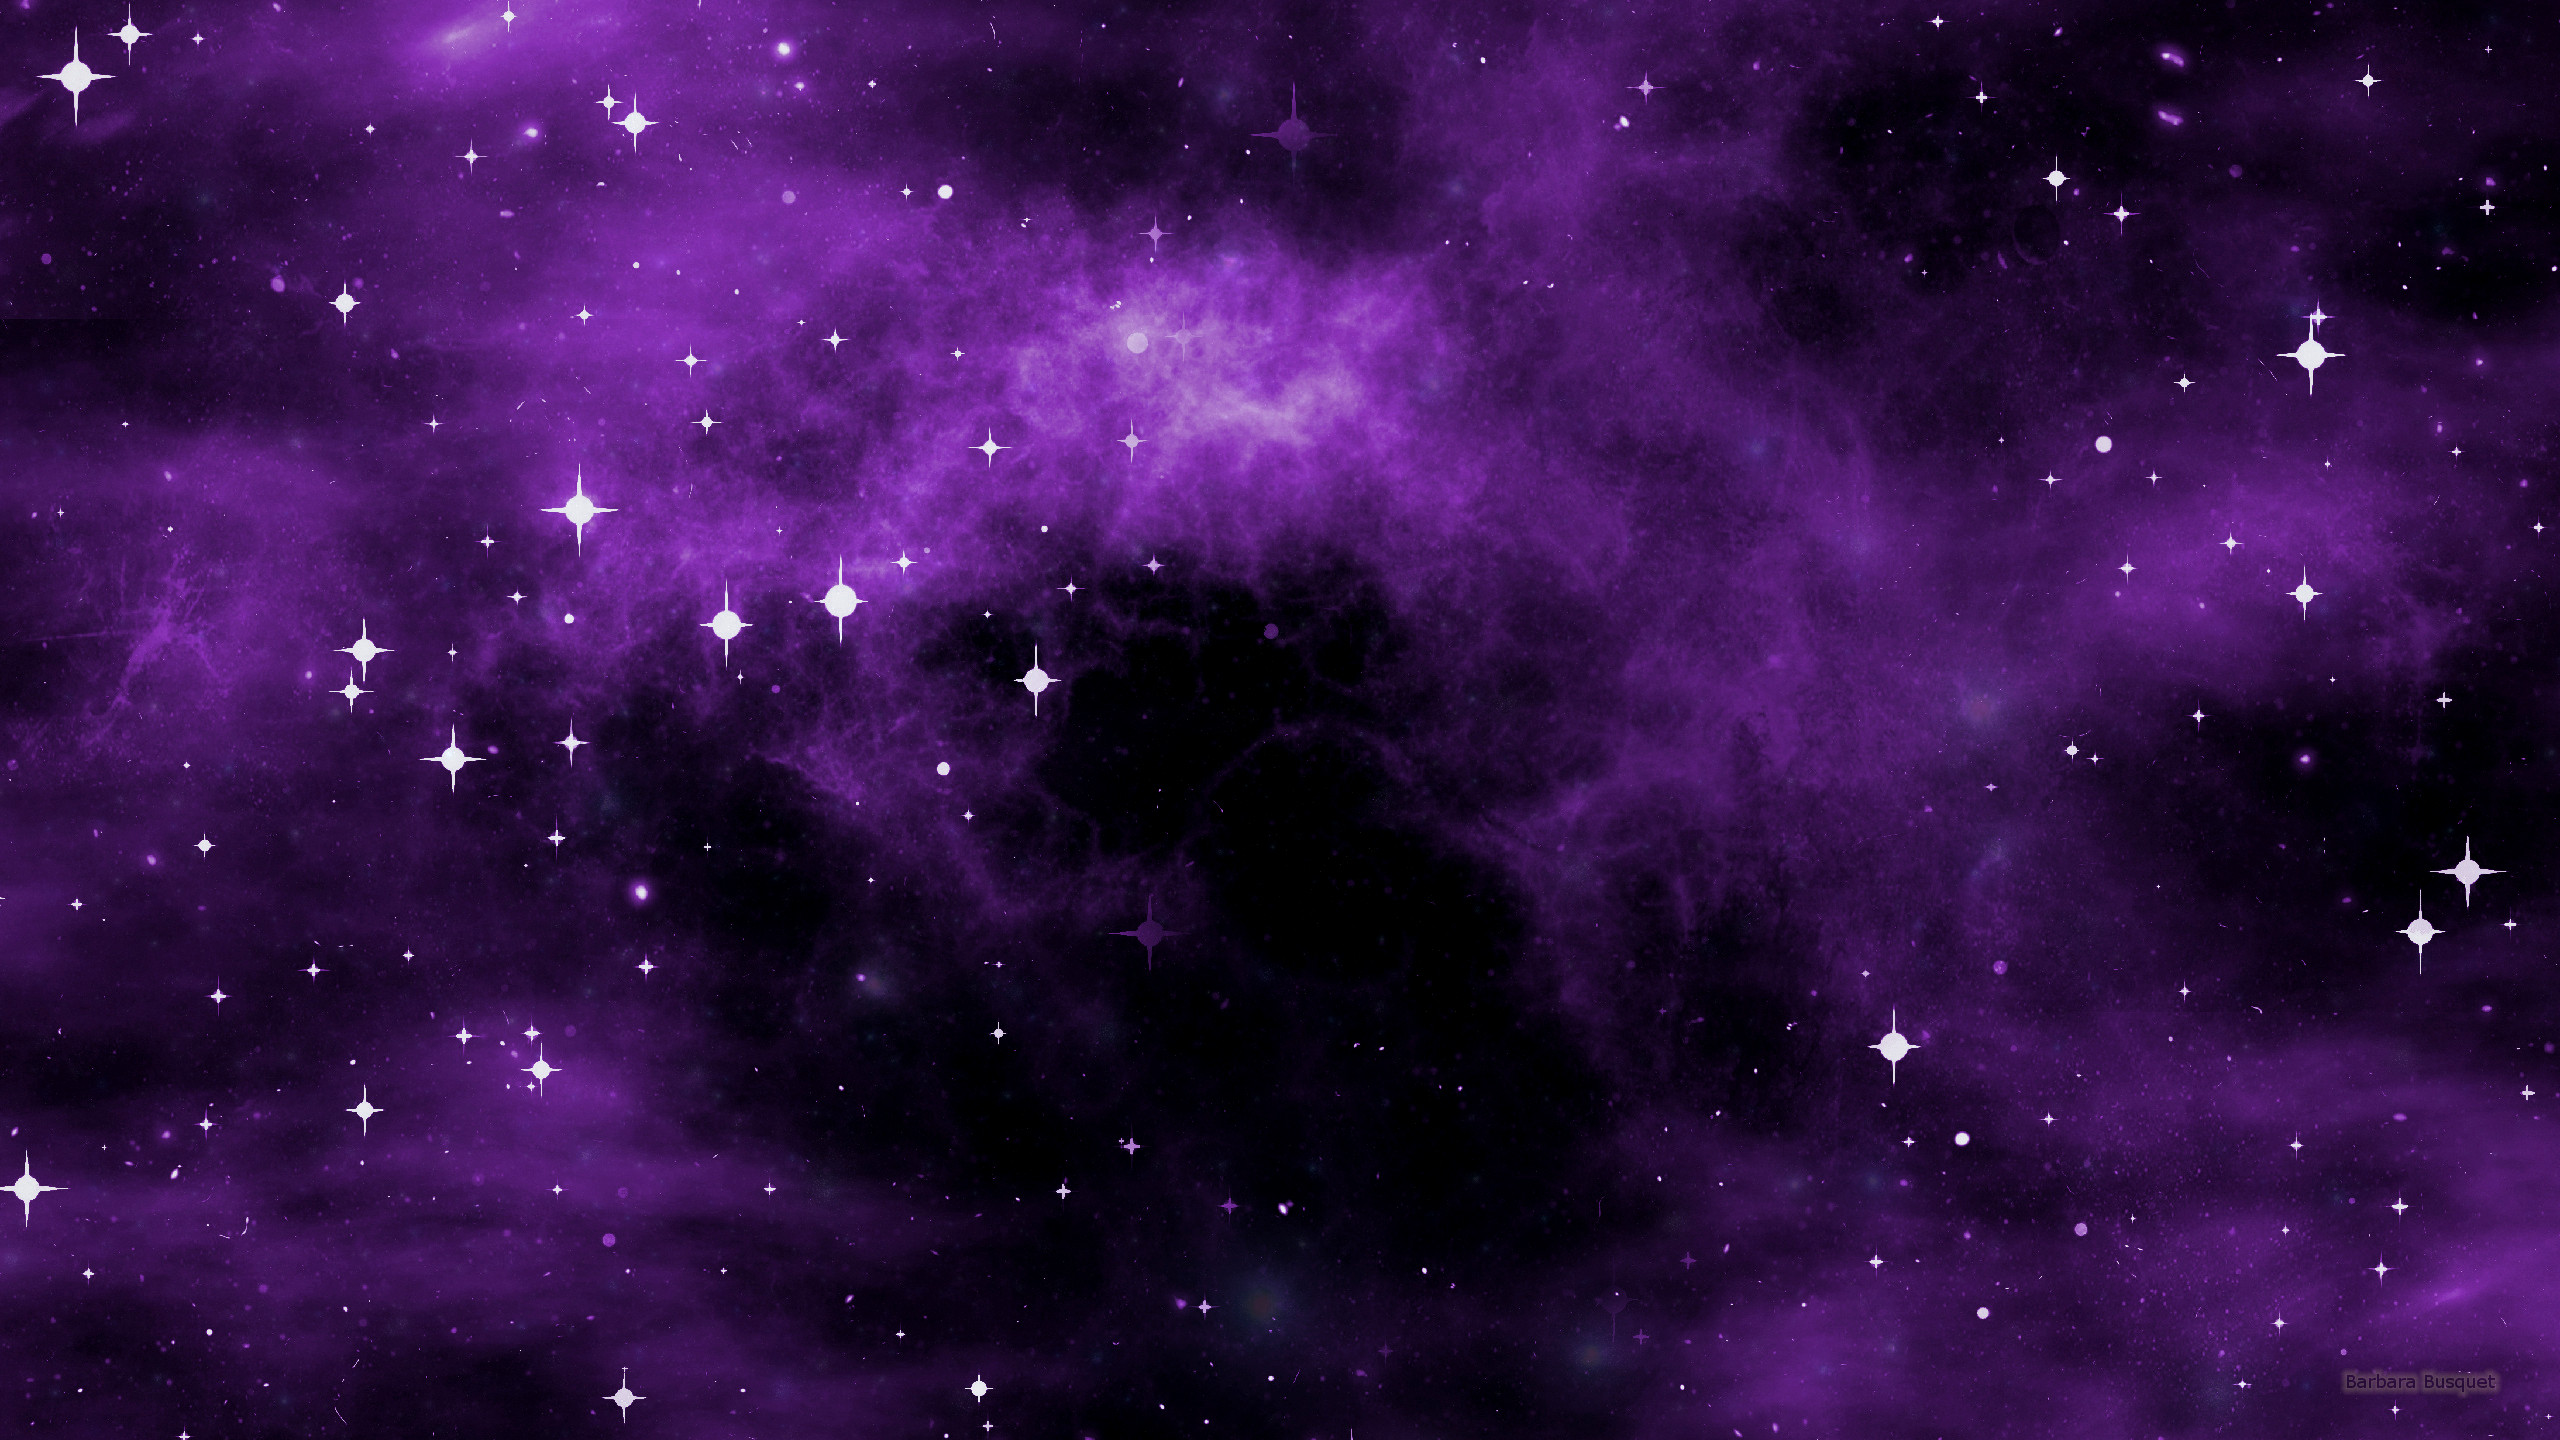 HD Space Wallpapers - Barbaras HD Wallpapers